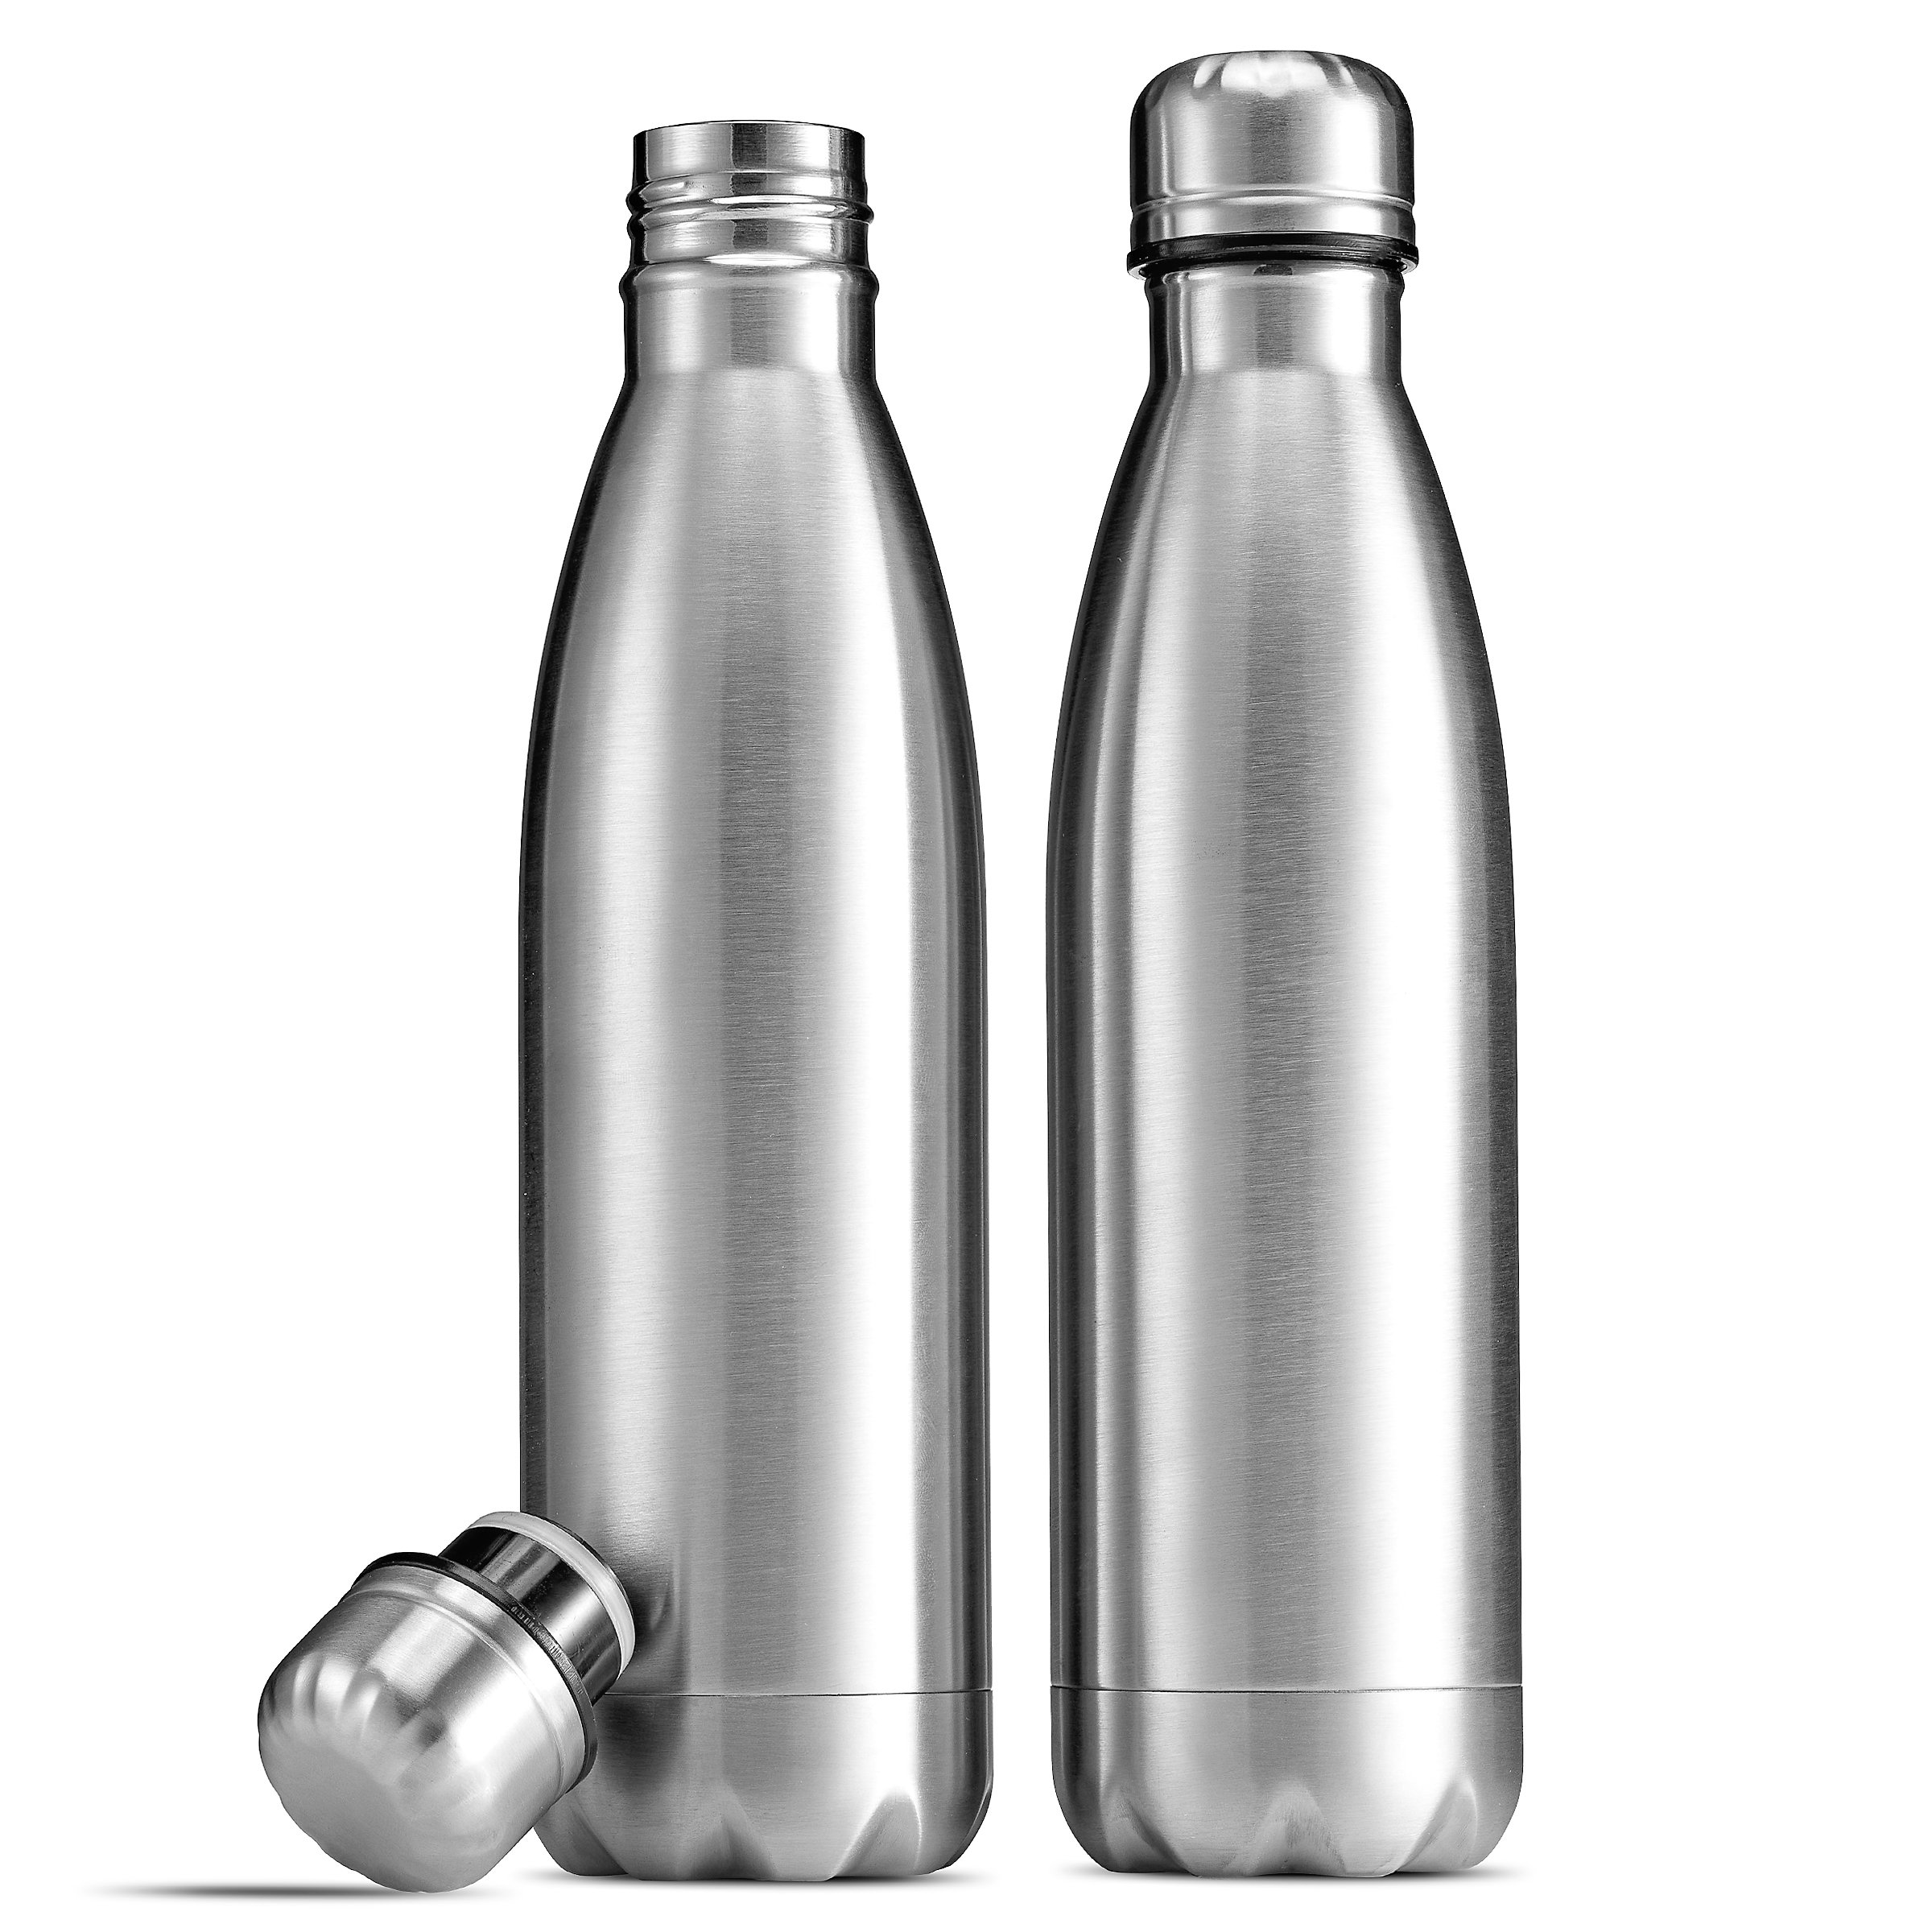 FINEDINE Stainless Steel Water Bottle - Set of 2 (17-Oz.) Double-Wall Vacuum Insulated Water Bottle, Keeps Drinks Hot for 12 Hours, Cold for 24 Hours BPA FREE Rust Proof, Sweat Proof, Leak Proof